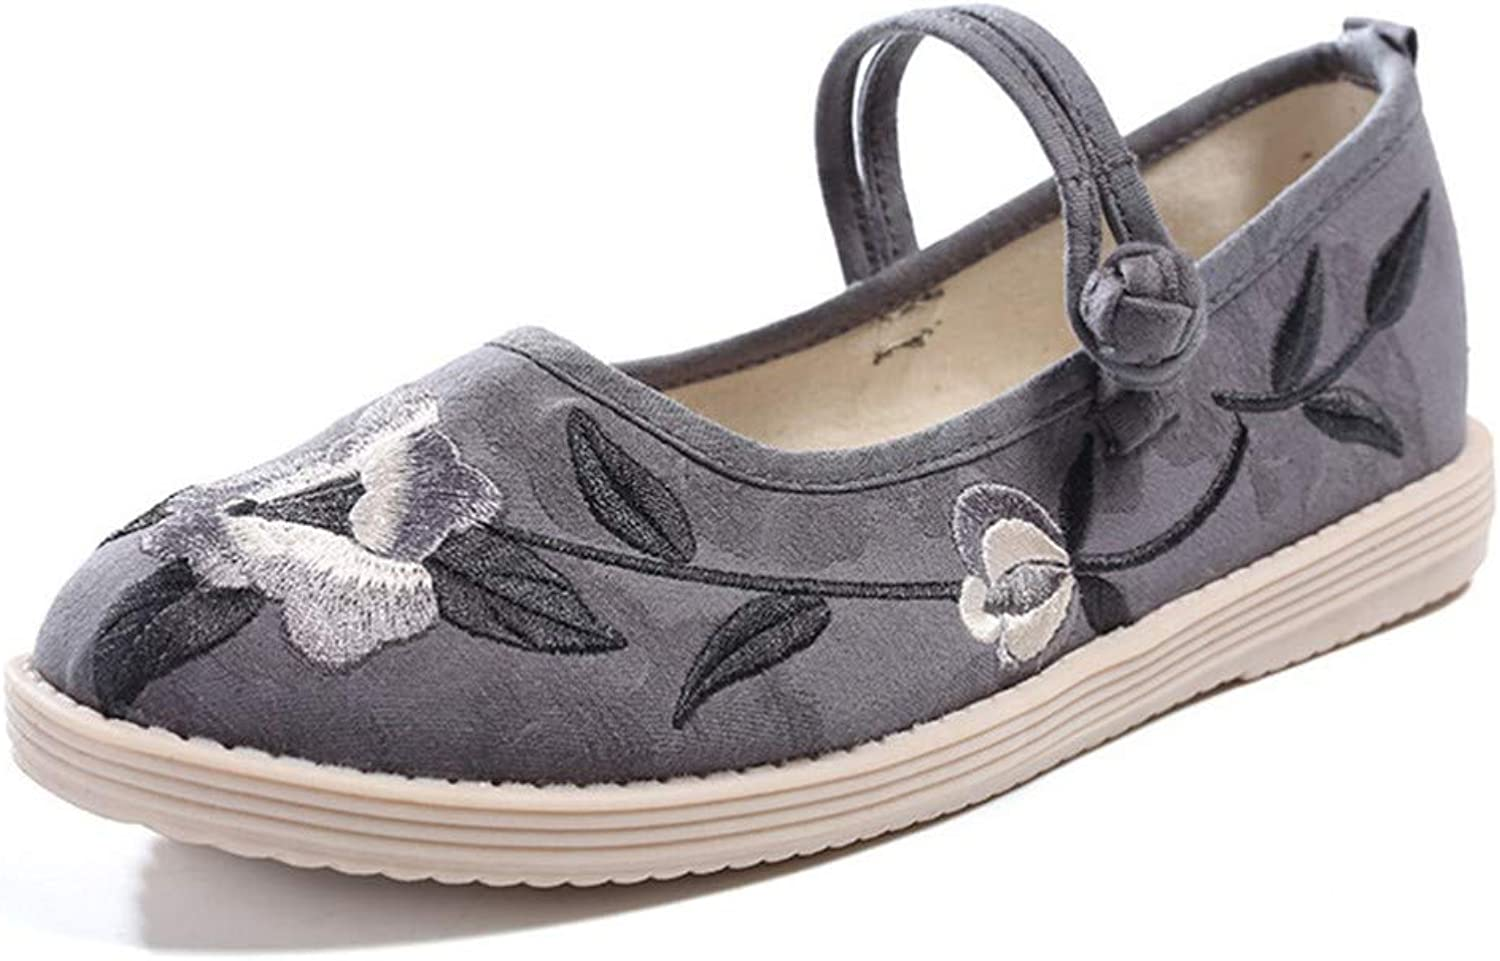 Cloth shoes, Women's shoes, stiffened Soles, Embroidered shoes, Dancing shoes-YU&Xin